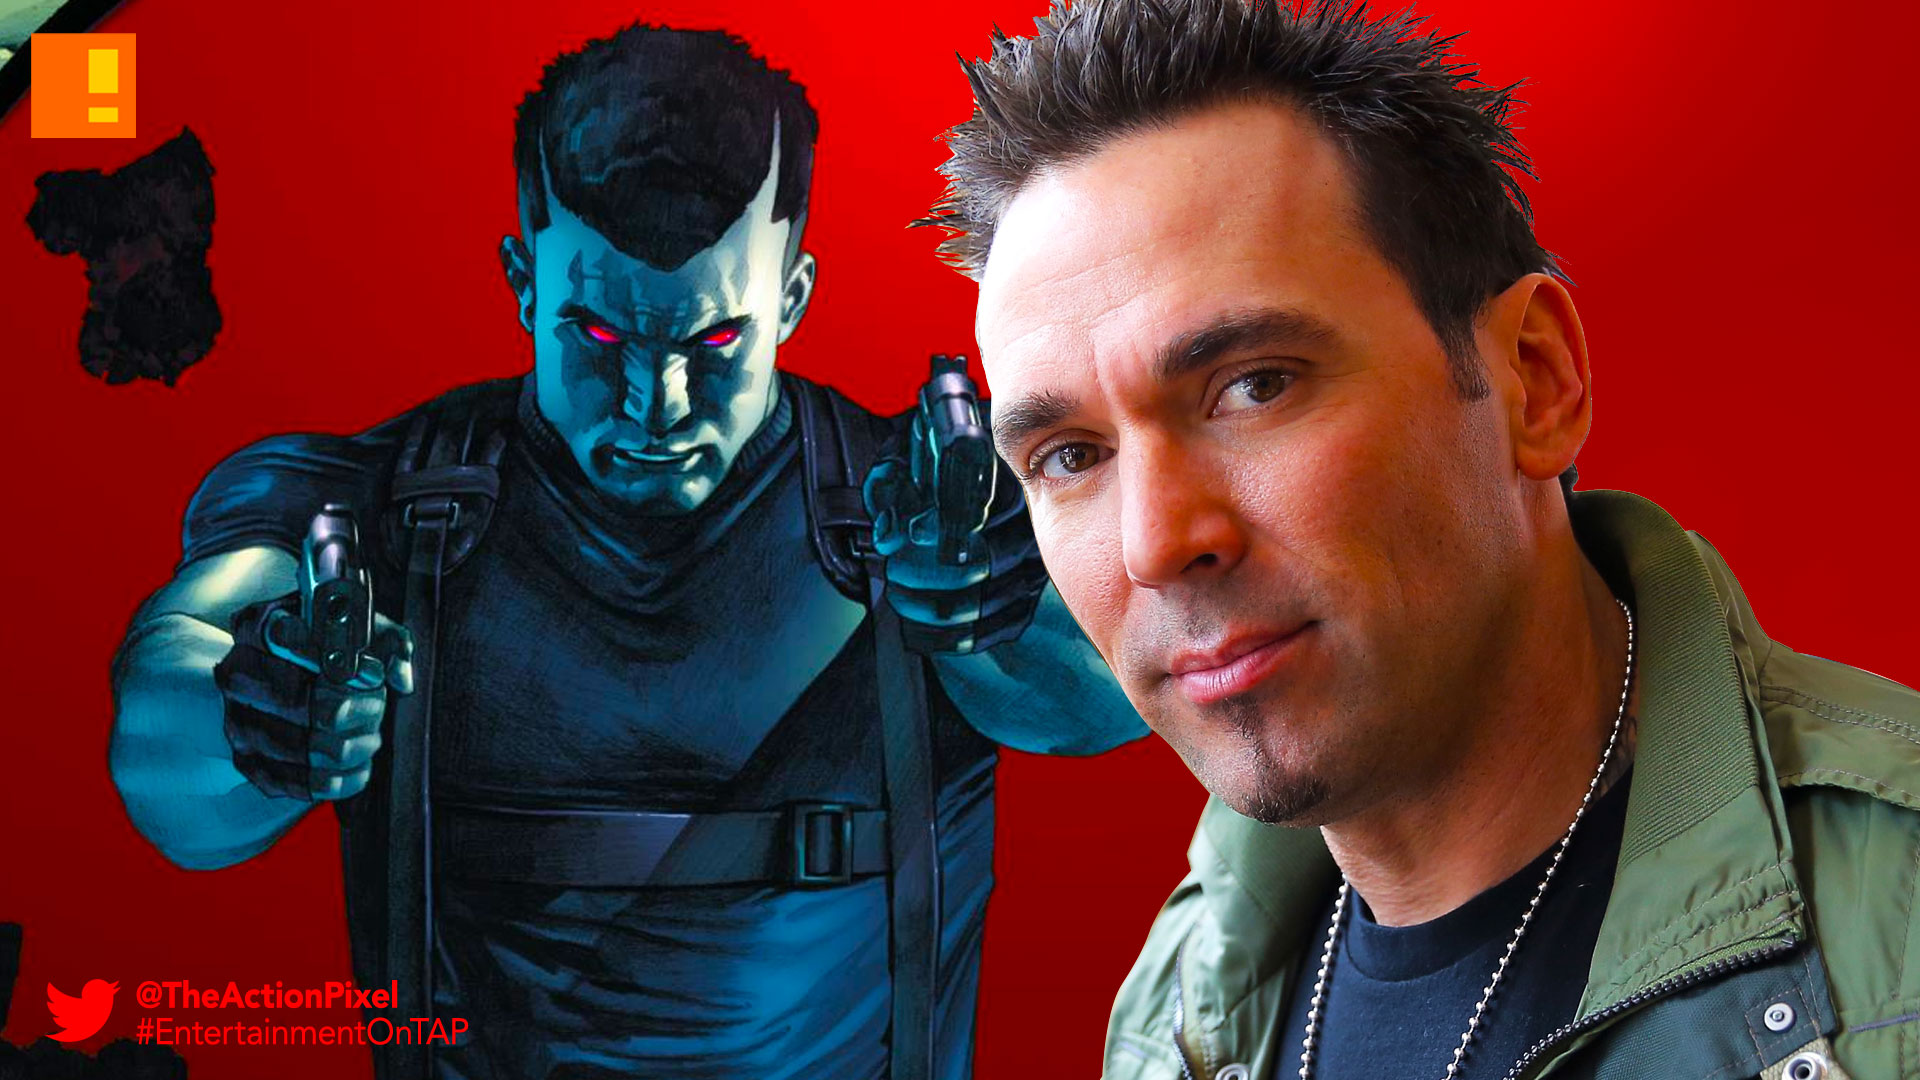 bloodshot Reborn, variant, valiant comics, valiant, jason david frank, the action pixel,entertainment on tap